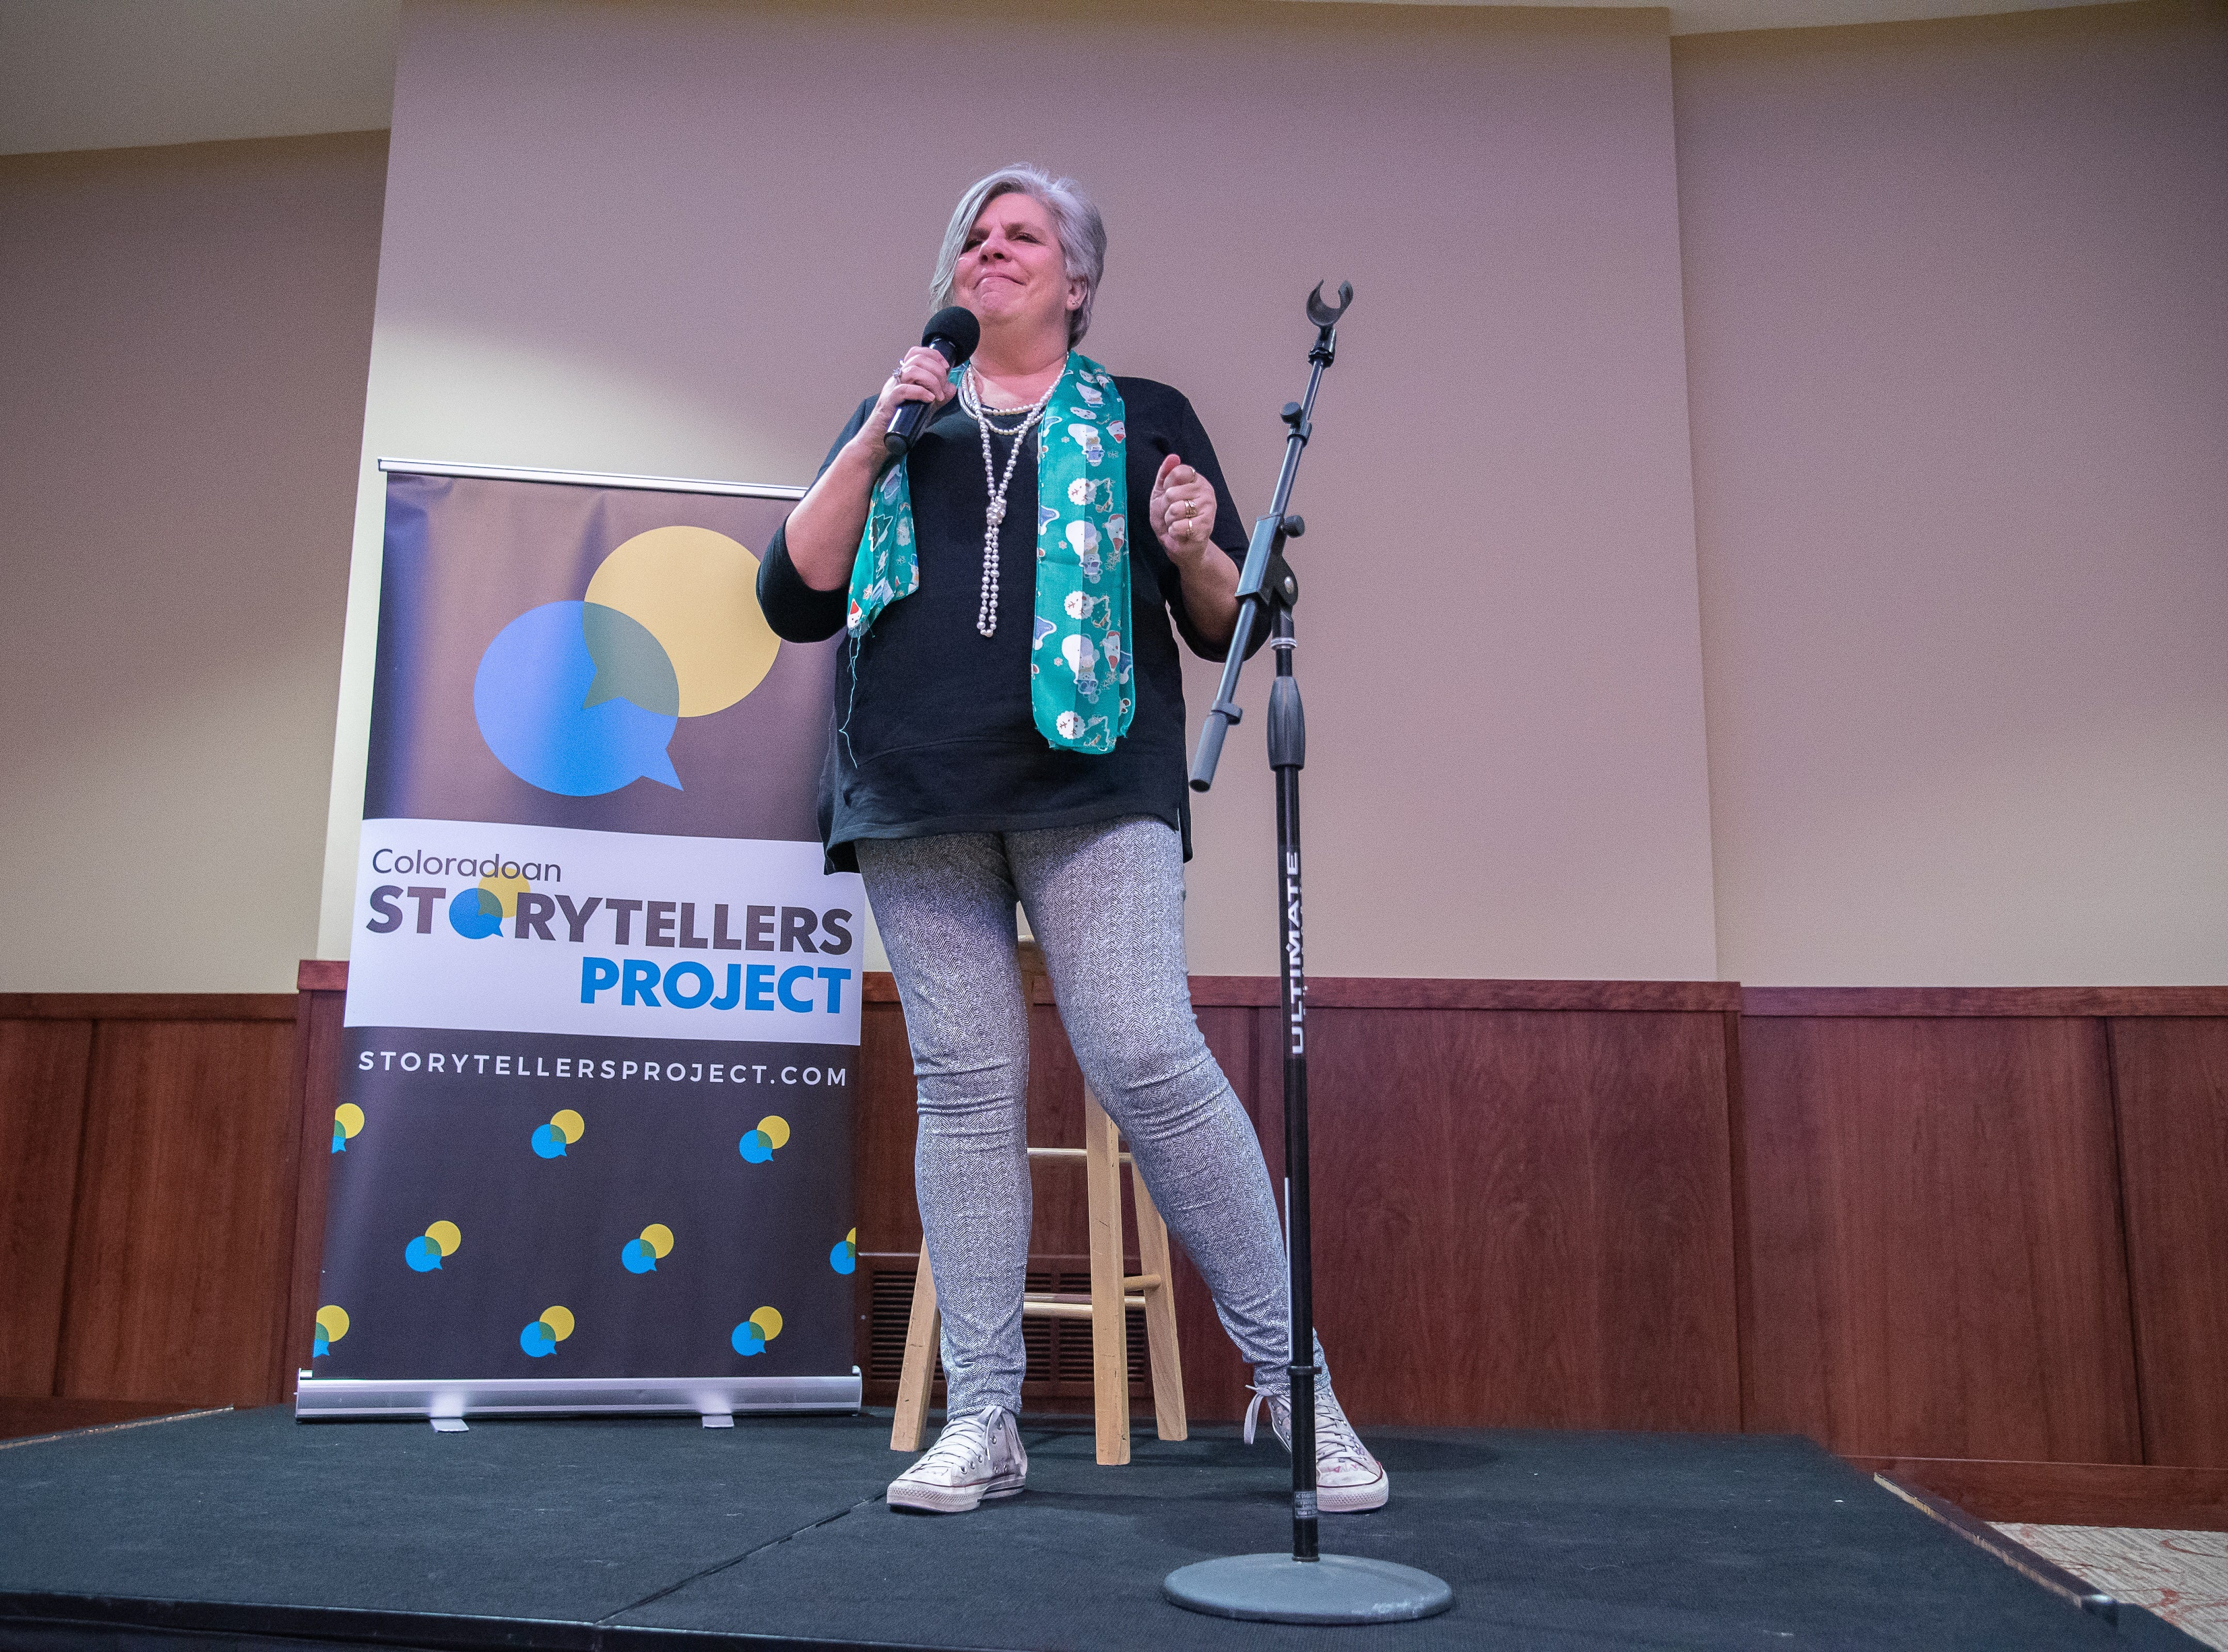 Storyteller Resa Mai tells a holiday story during the Coloradoan Storytellers Project at Lincoln Center on Tuesday, December 11, 2018.